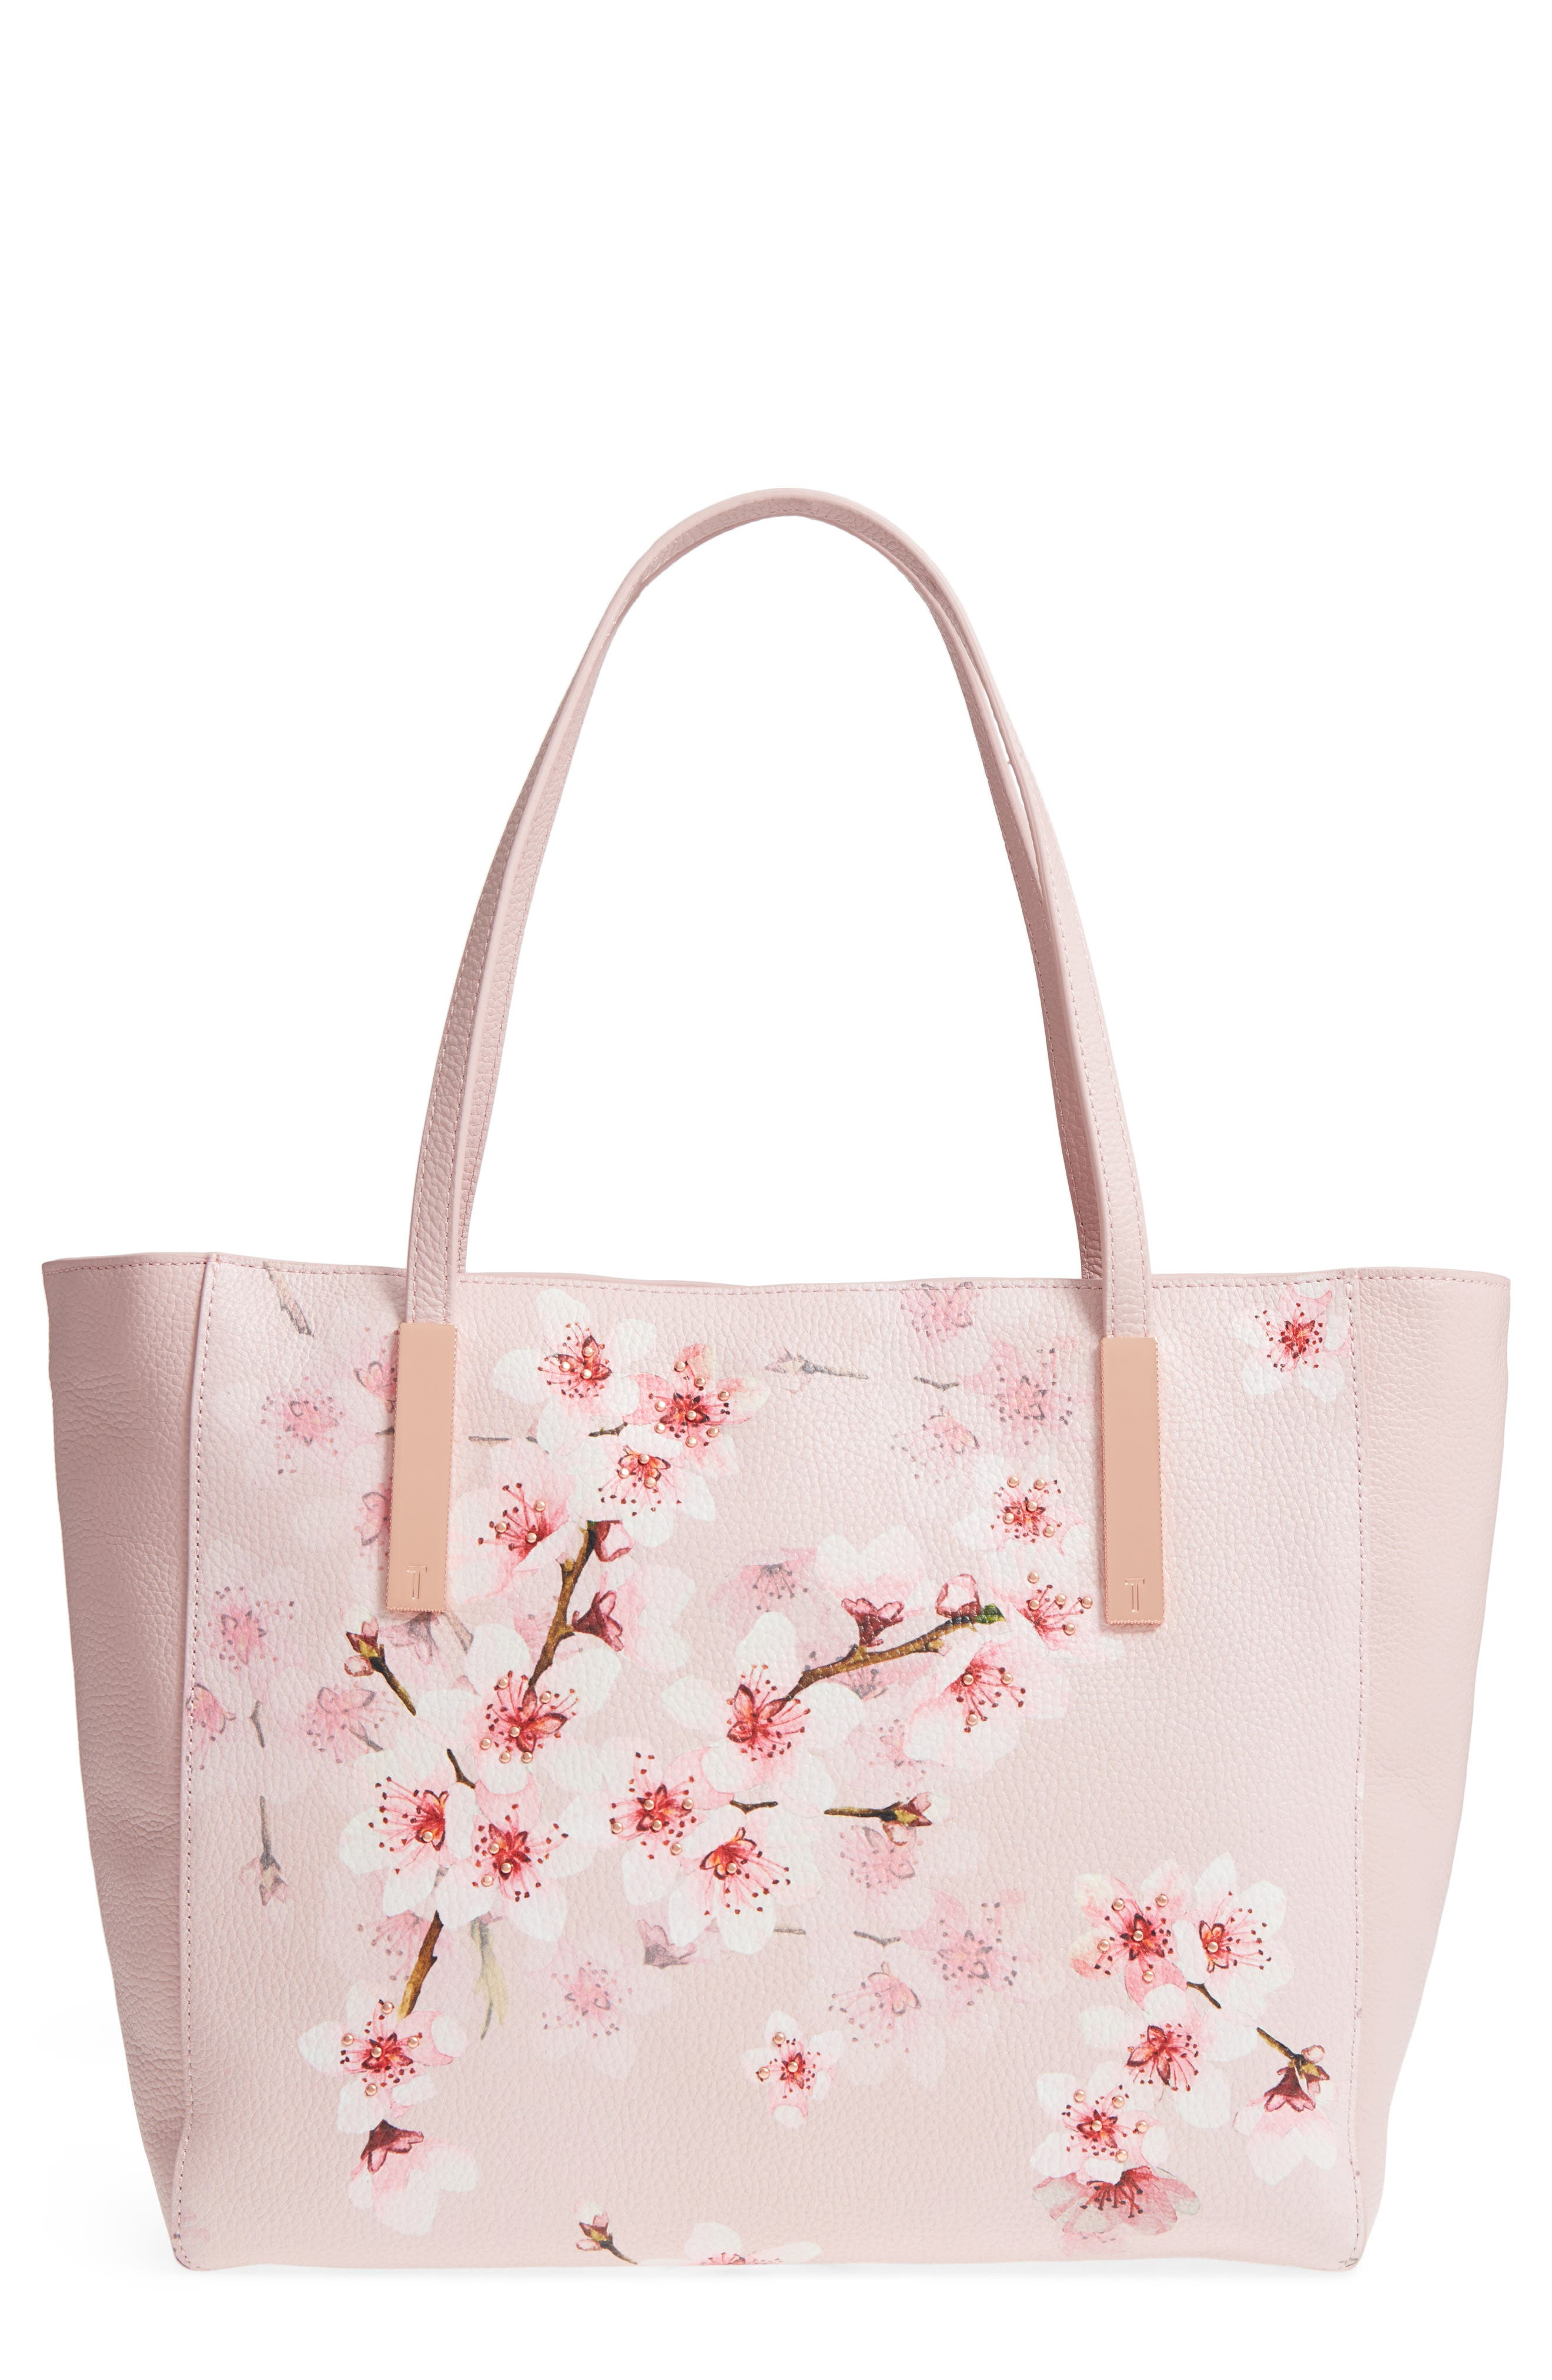 Soft Blossom Leather Shopper,                             Main thumbnail 1, color,                             683